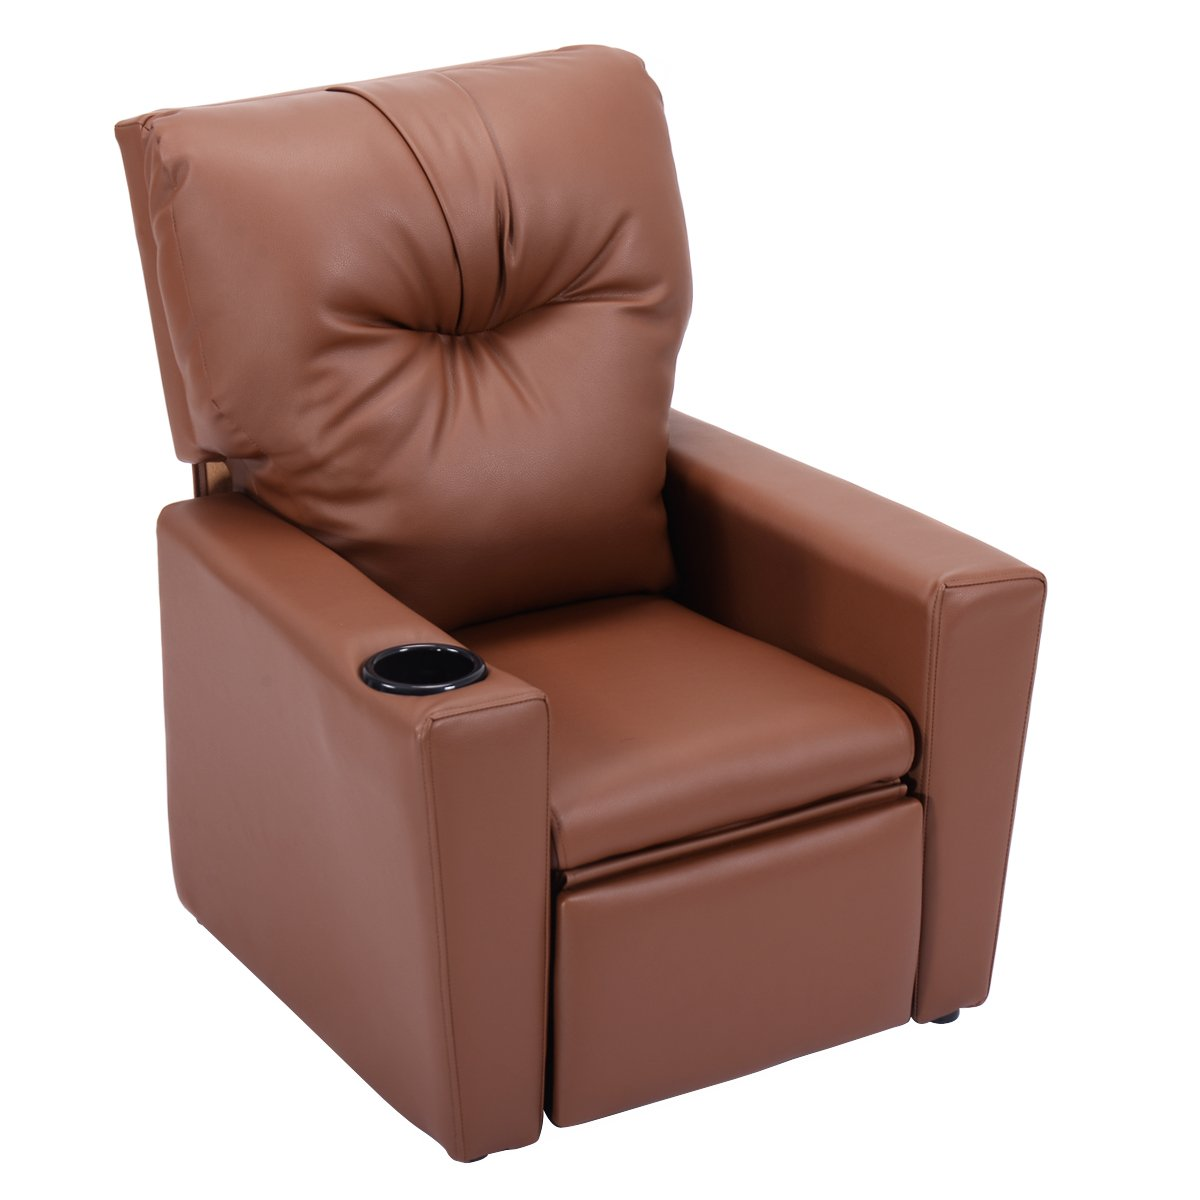 Costzon Kids Recliner Chair Manual PU Leather Reclining Seat w/Cup Holder (Brown)